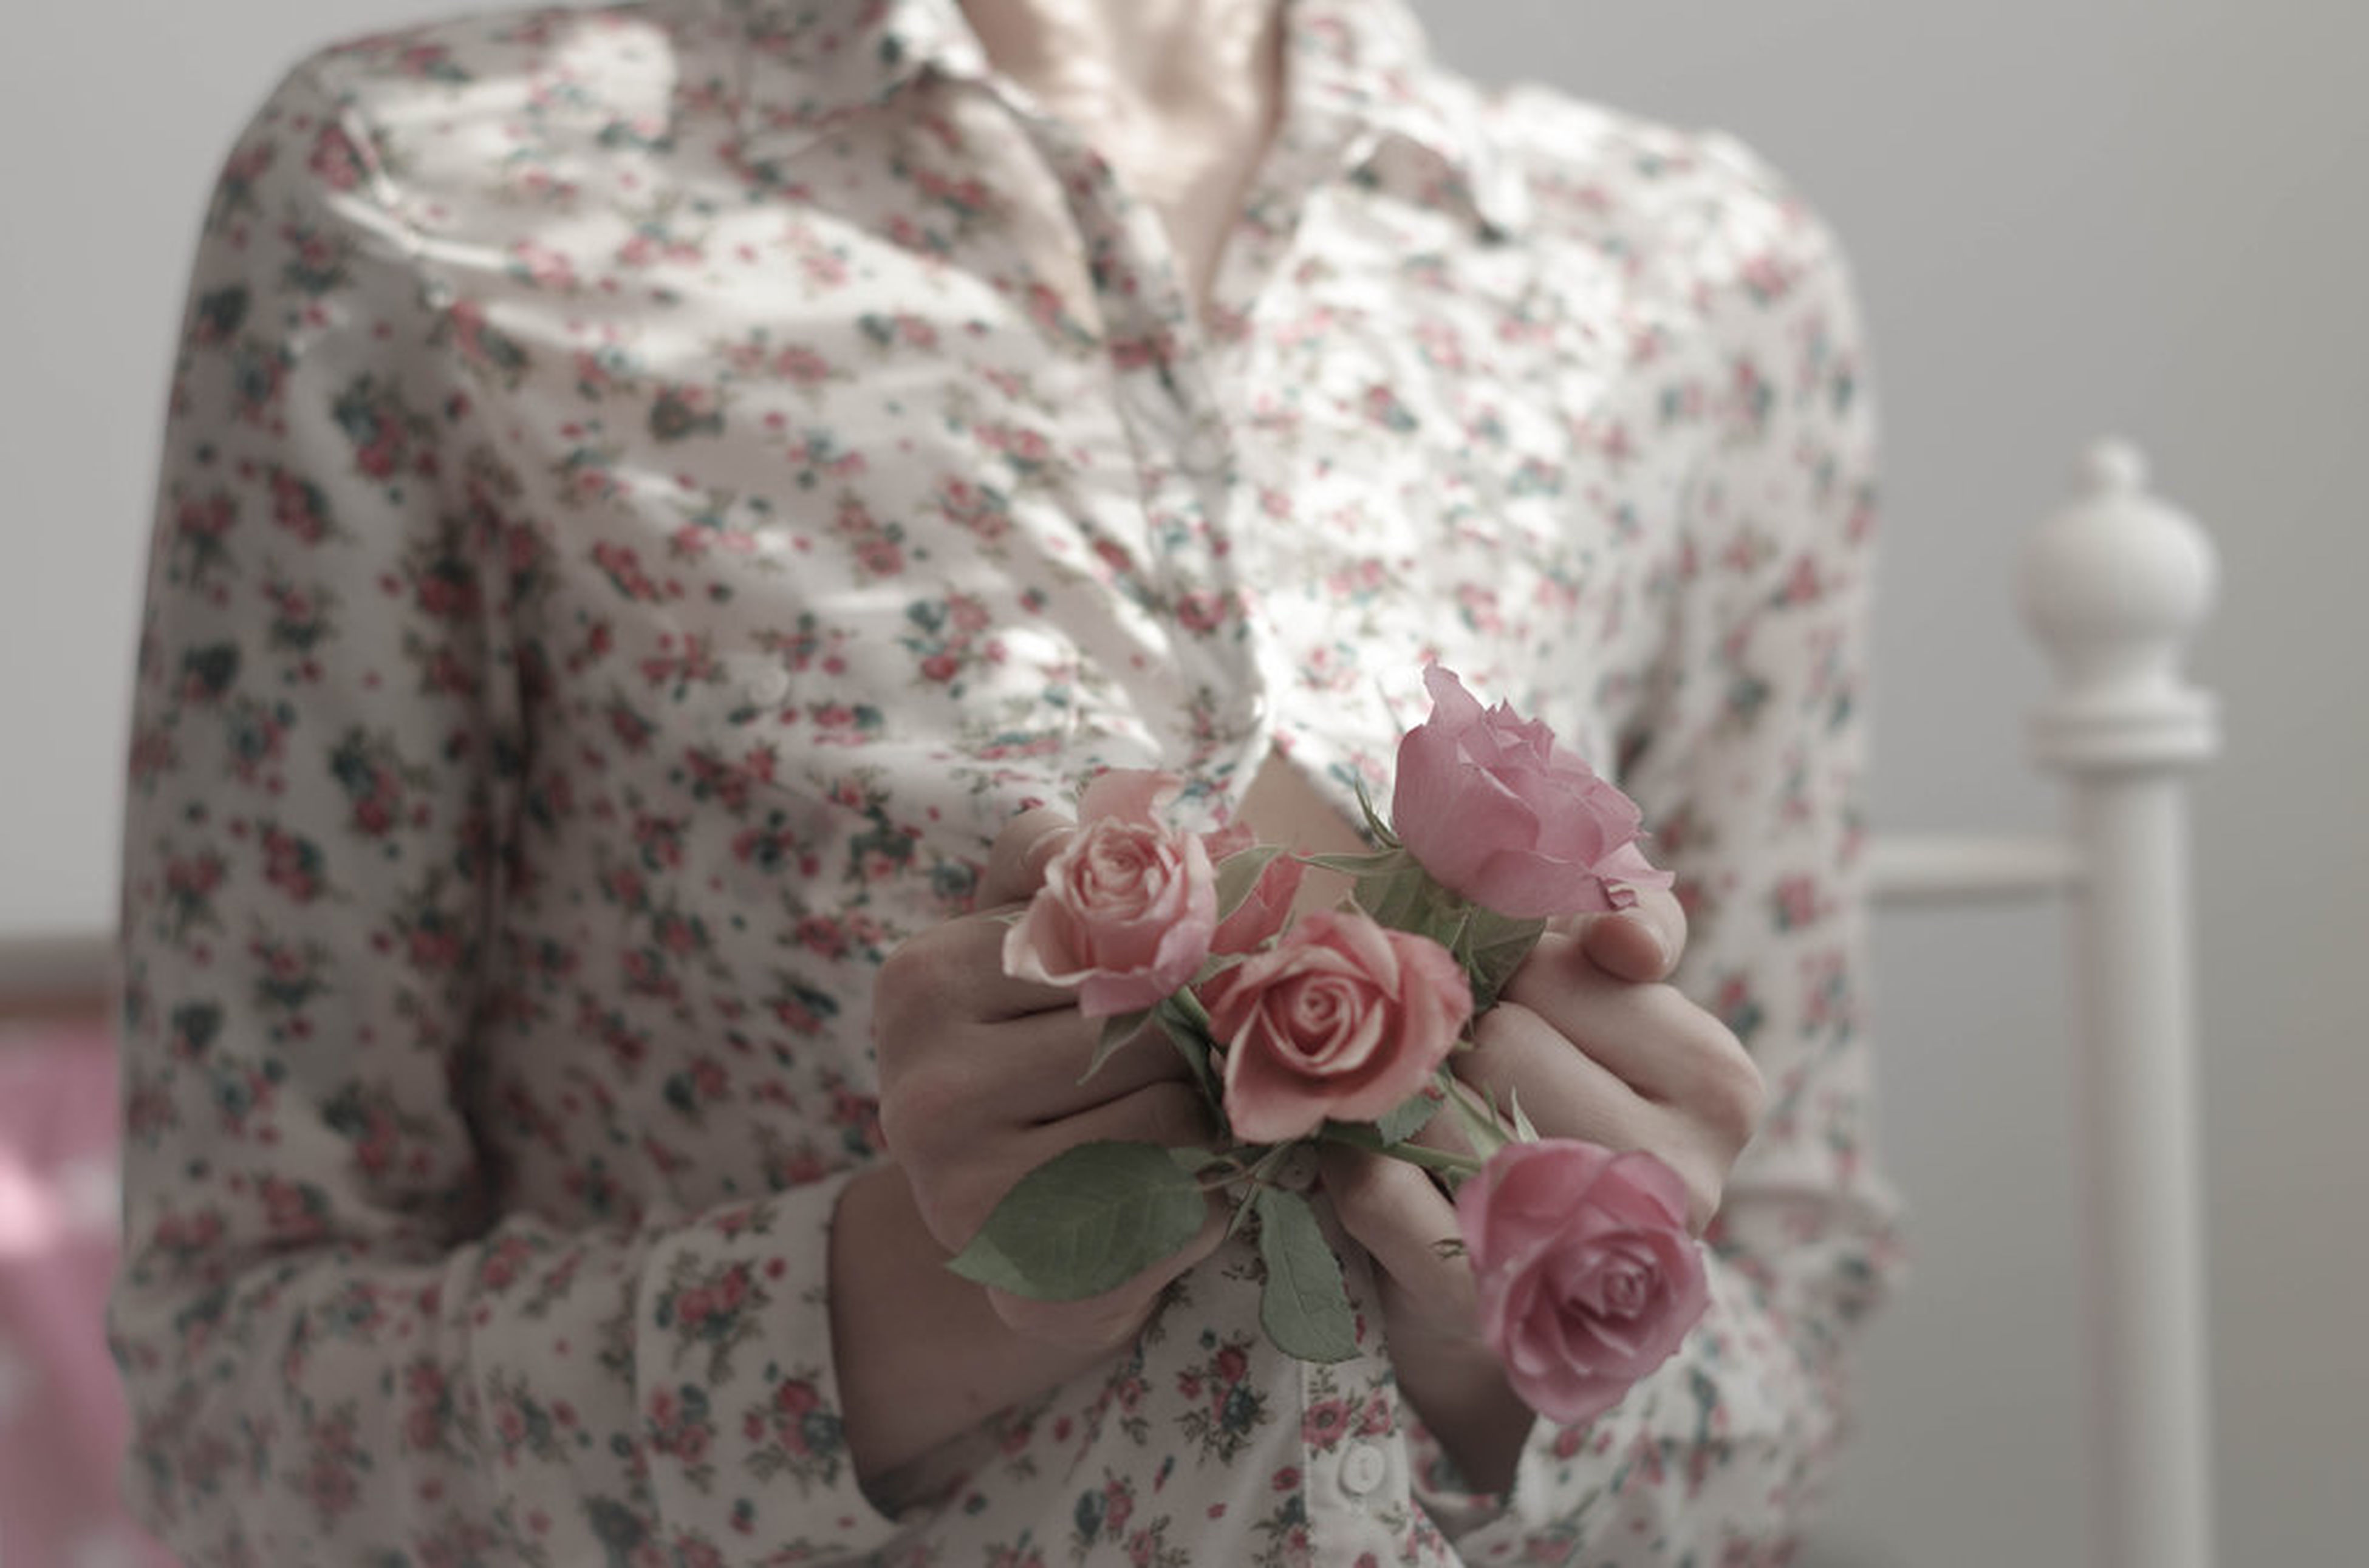 flower, love, midsection, adults only, pink color, human hand, bride, adult, people, close-up, one woman only, women, one person, wedding, human body part, wedding dress, wife, indoors, bouquet, only women, day